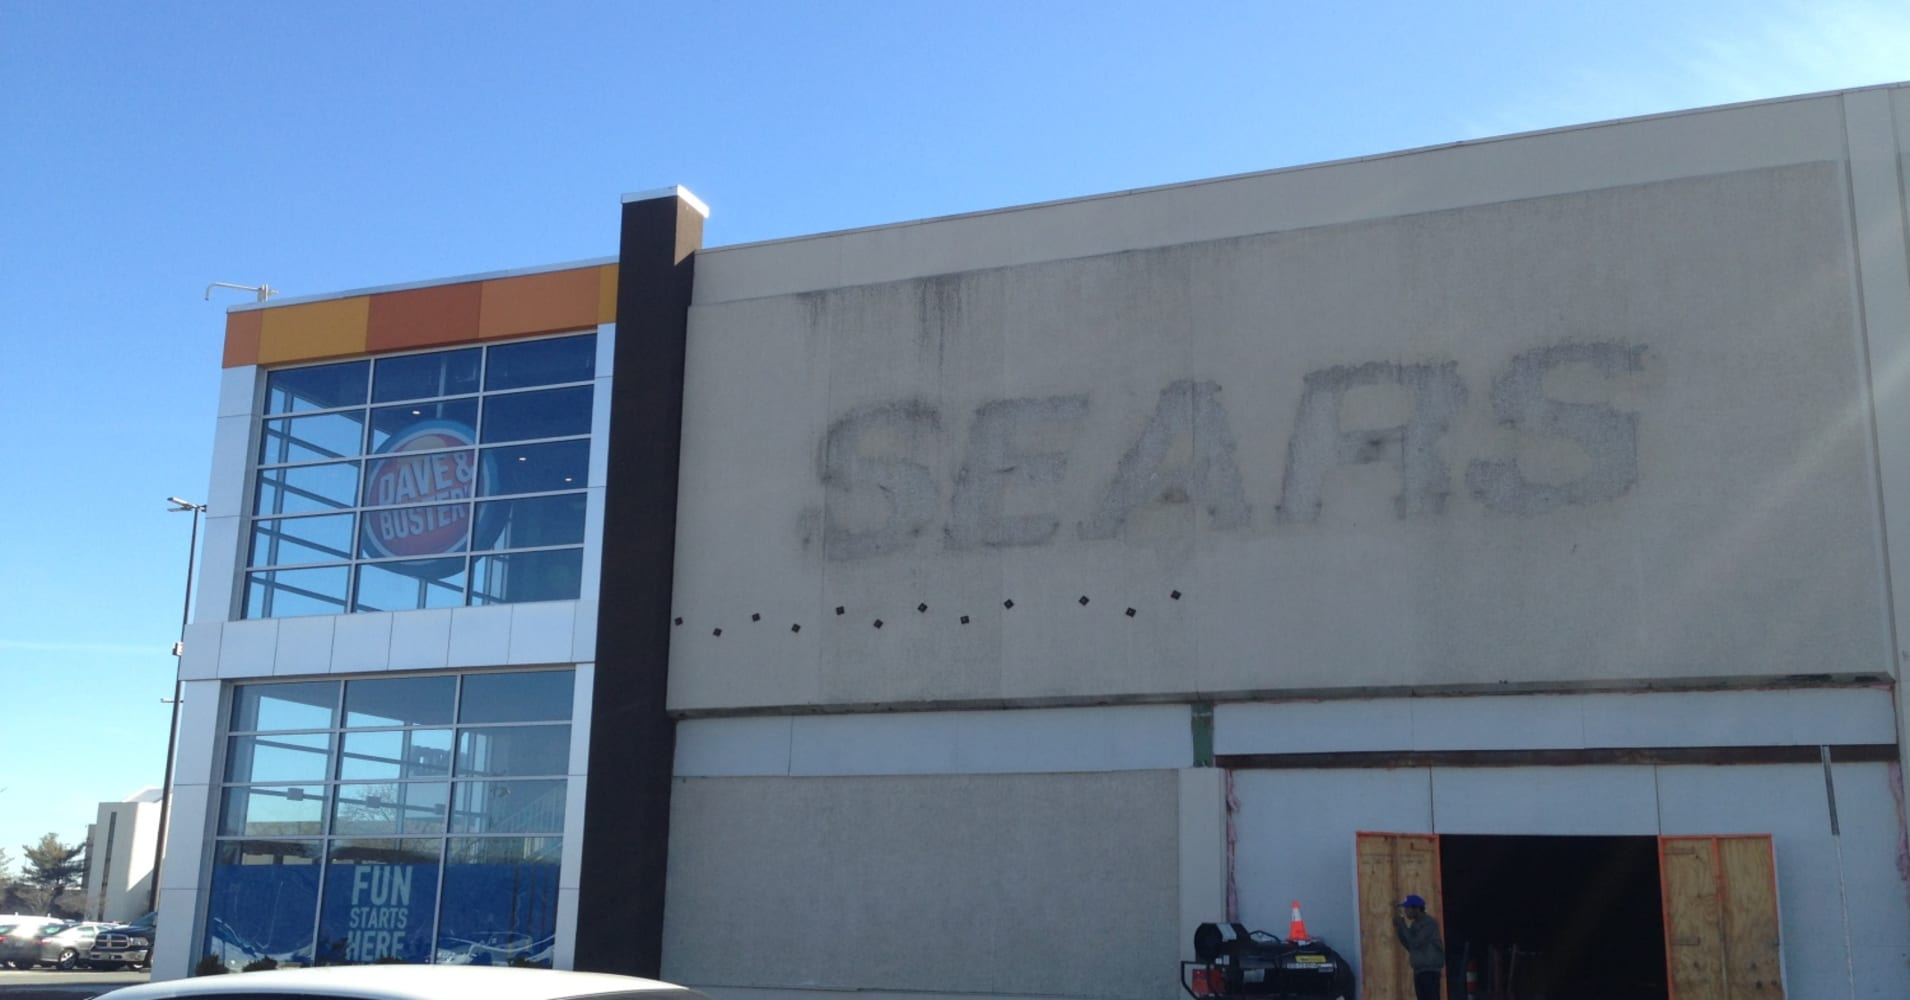 A Dave & Buster's just opened in an old Sears location. Here's what it looks like: